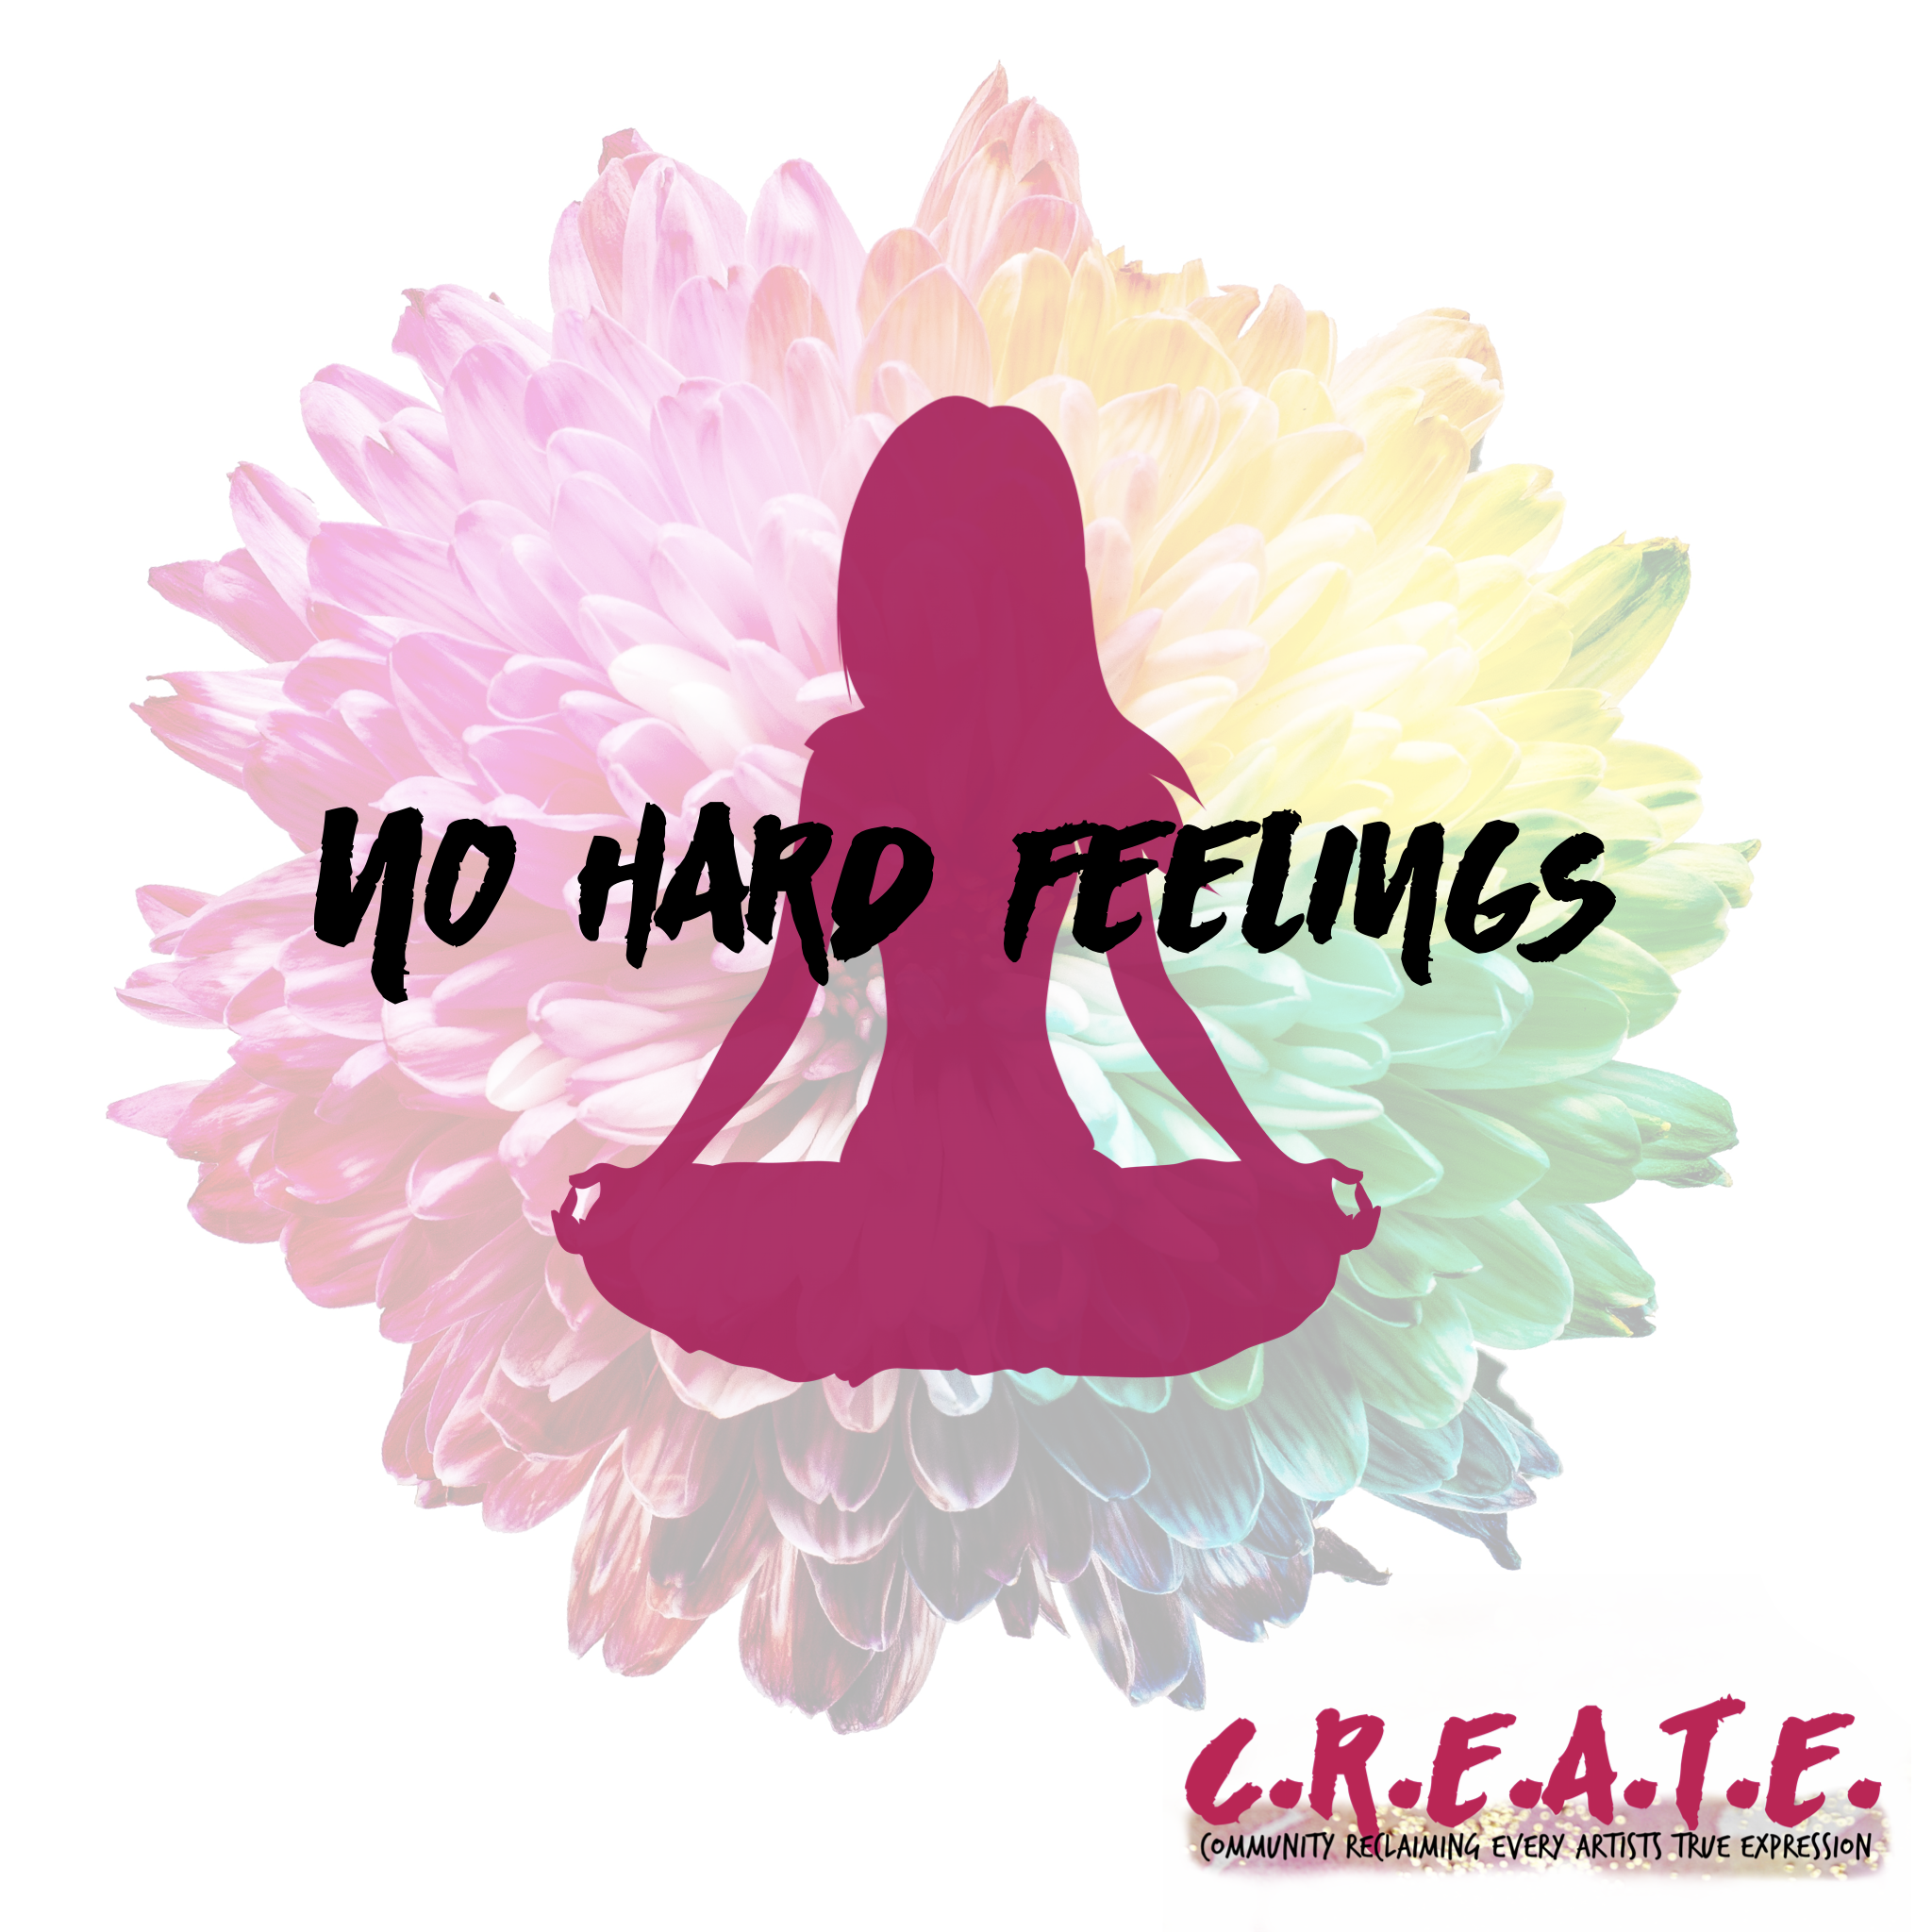 No Hard Feelings - $1.99 - Click Image To Purchase!